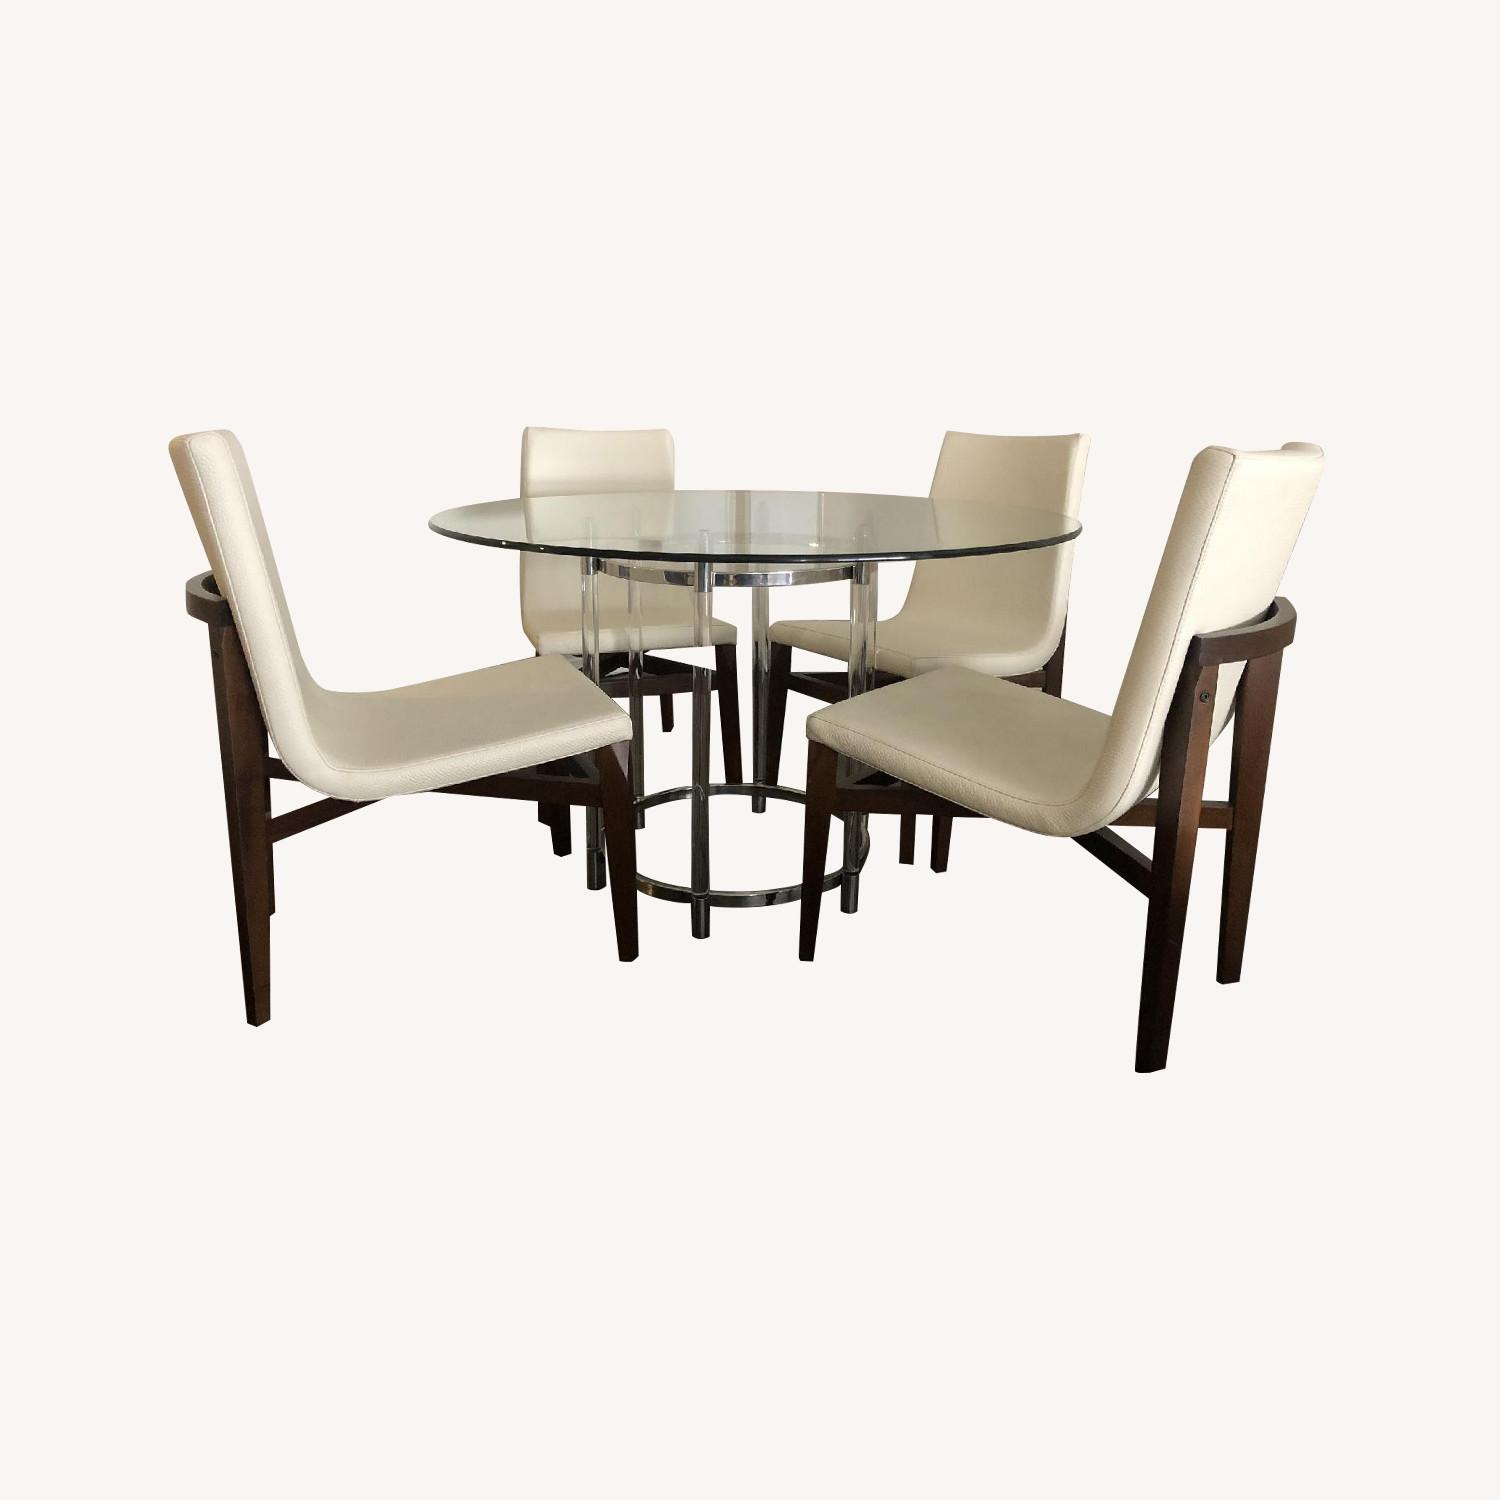 Glass Dining Table w/ 4 White Leather & Wood Dining Chairs - image-0